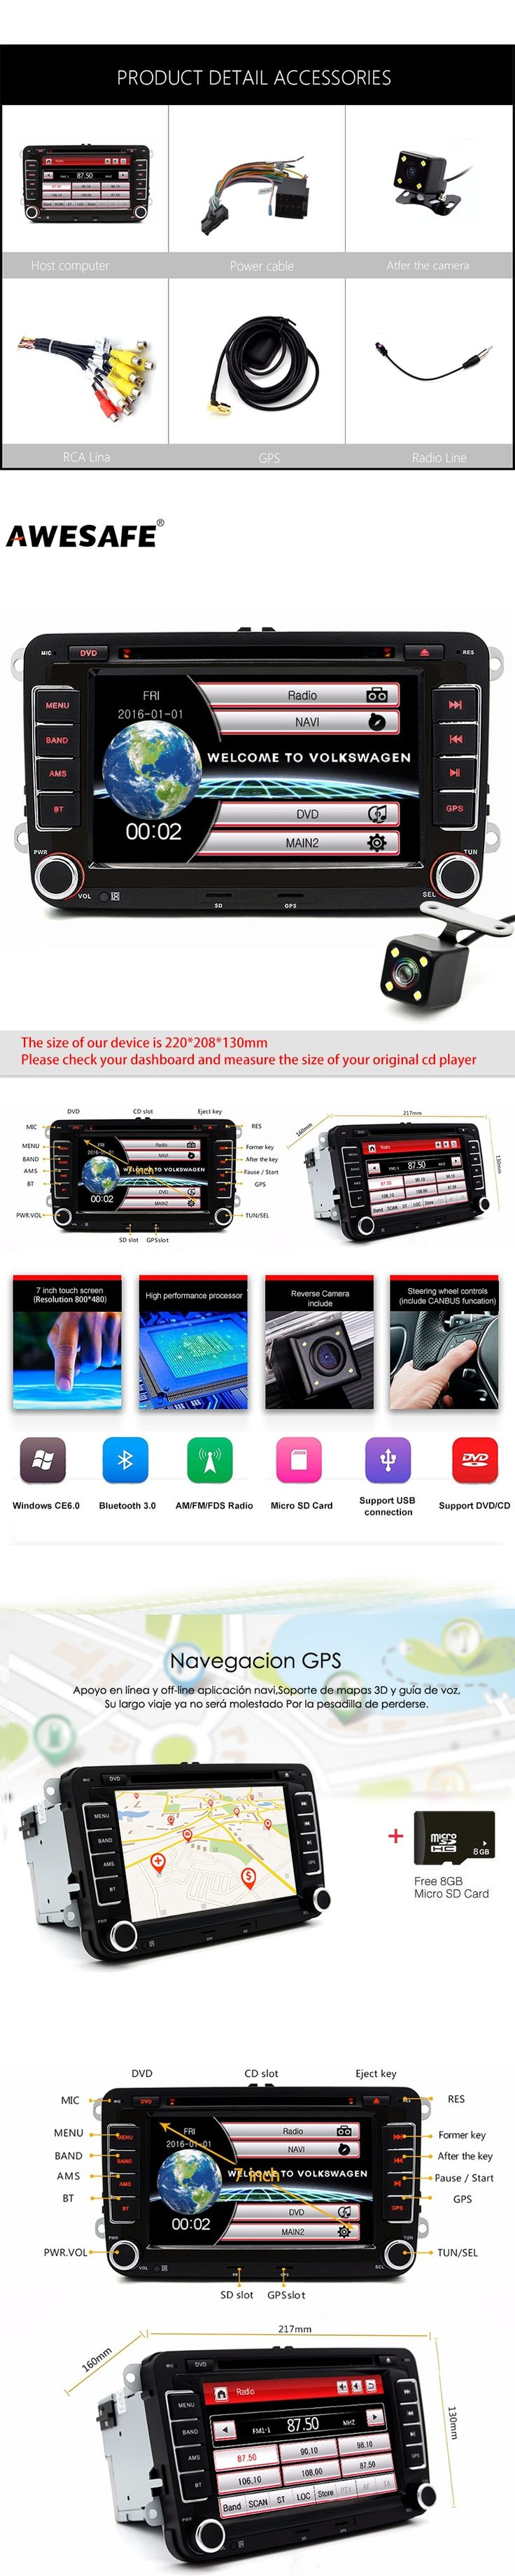 Wholesale 7 inch 2 Din Car DVD Player For VW/Volkswagen/Passat/POLO/GOLF/Skoda/Seat/Leon GPS Navigation Bluetooth Stereo Radio